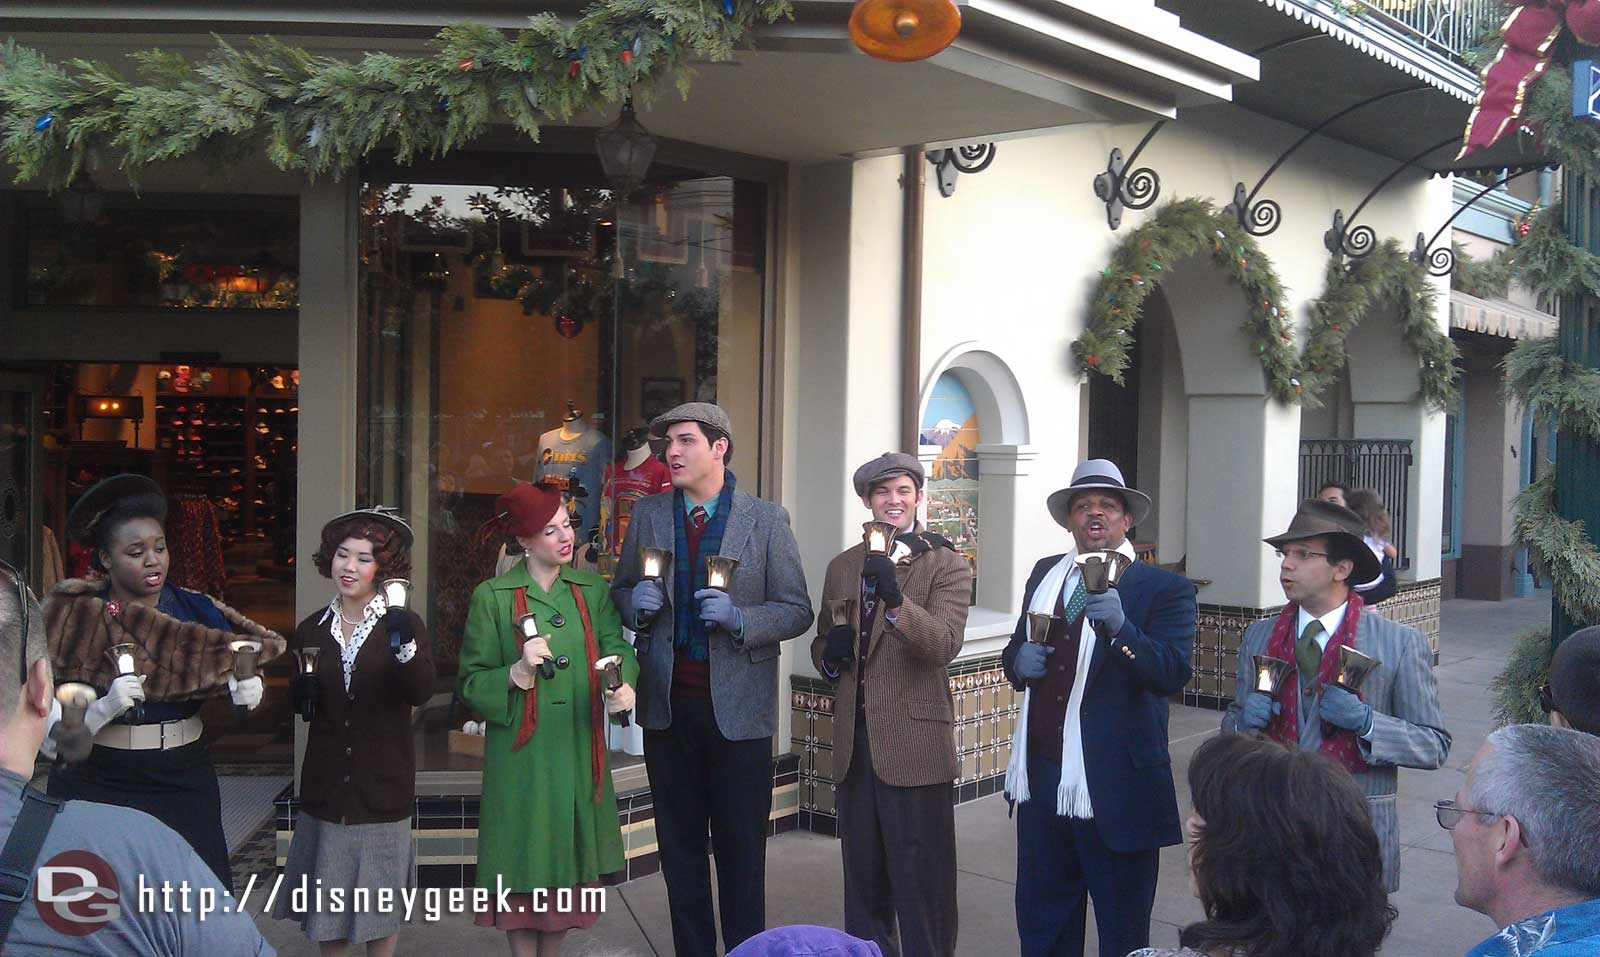 The Buena Vista Street Community Bell Ringers performing in front of the Los Feliz Five & Dime